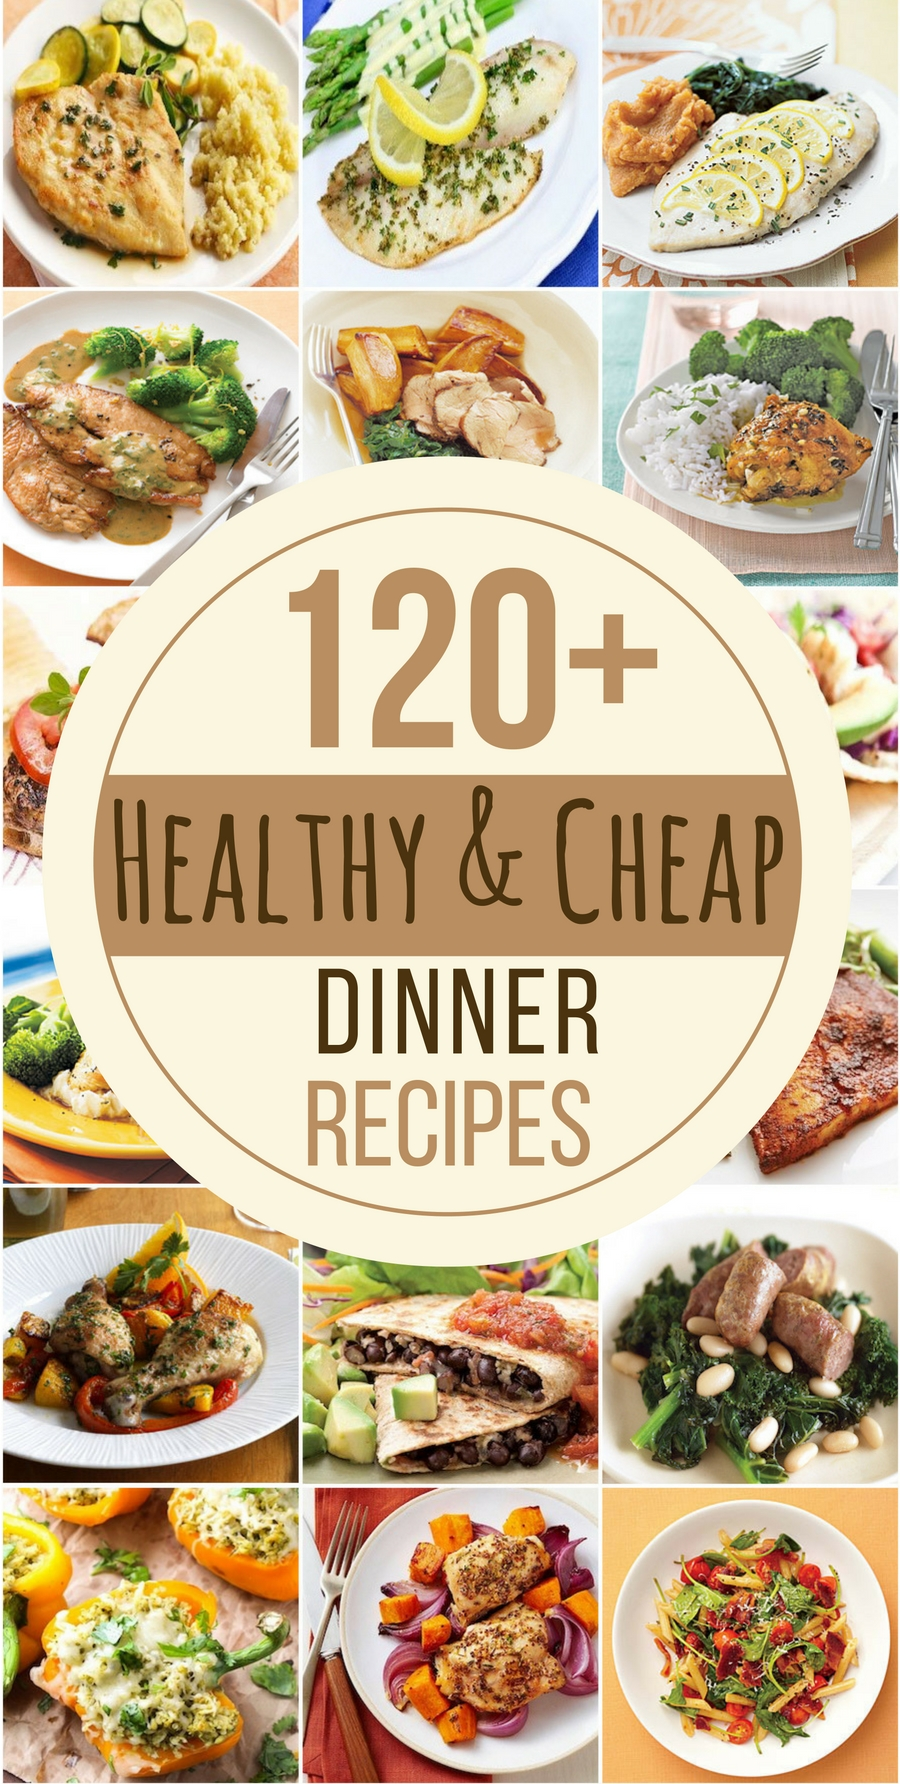 10 Amazing Cheap Meal Ideas For 4 120 healthy and cheap dinner recipes prudent penny pincher 3 2021